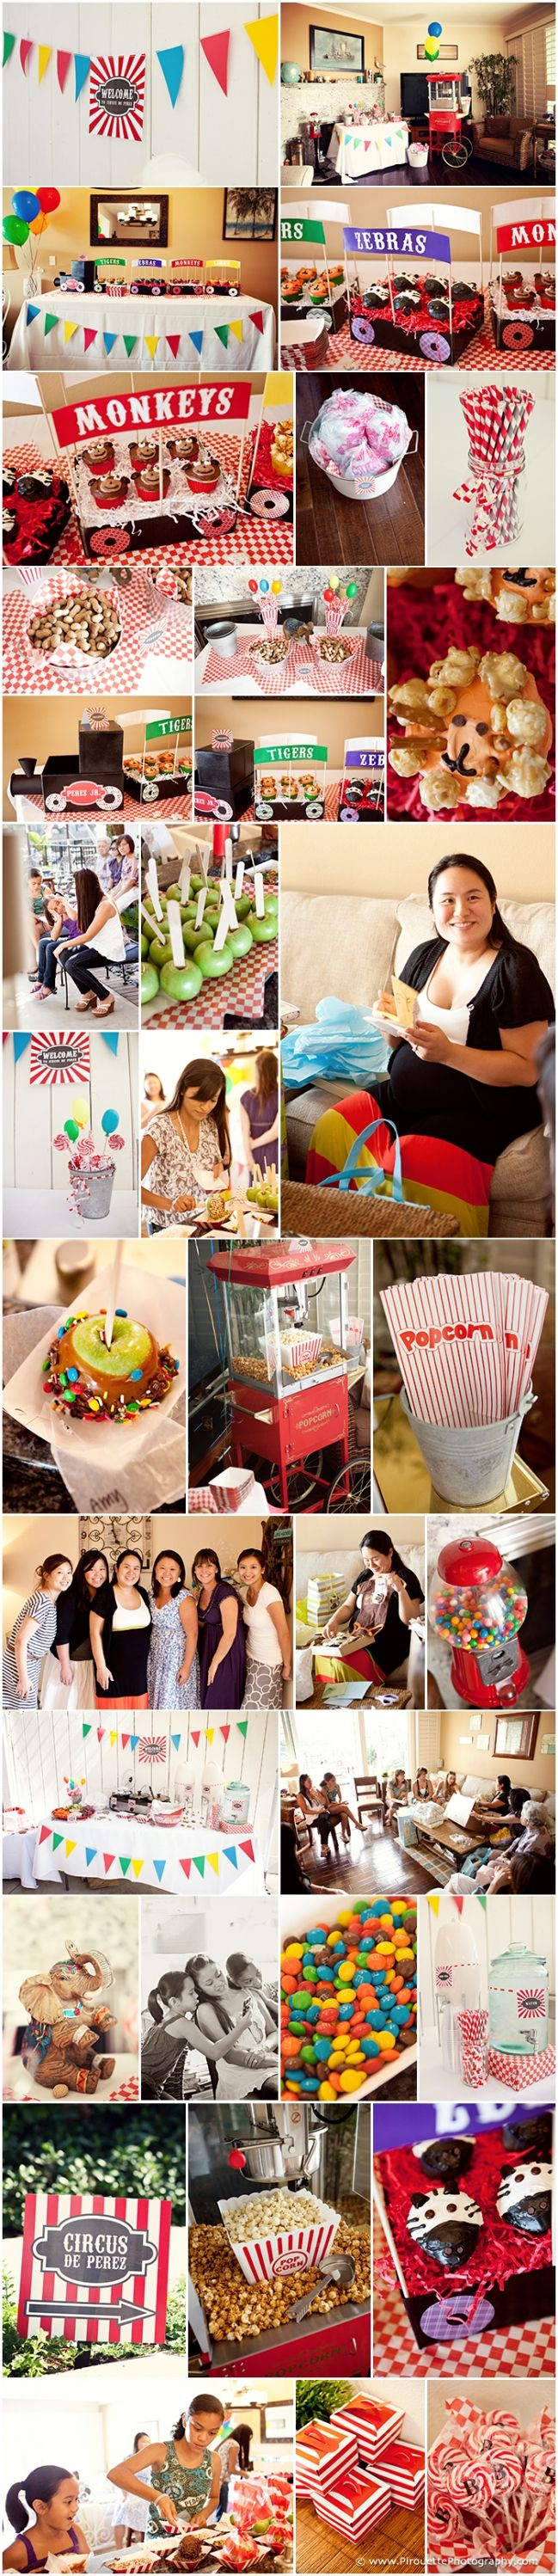 Circus Themed Baby Shower  www.PirouettePhotography.com  Pirouette Photography, a Teresa Y.F. Collection